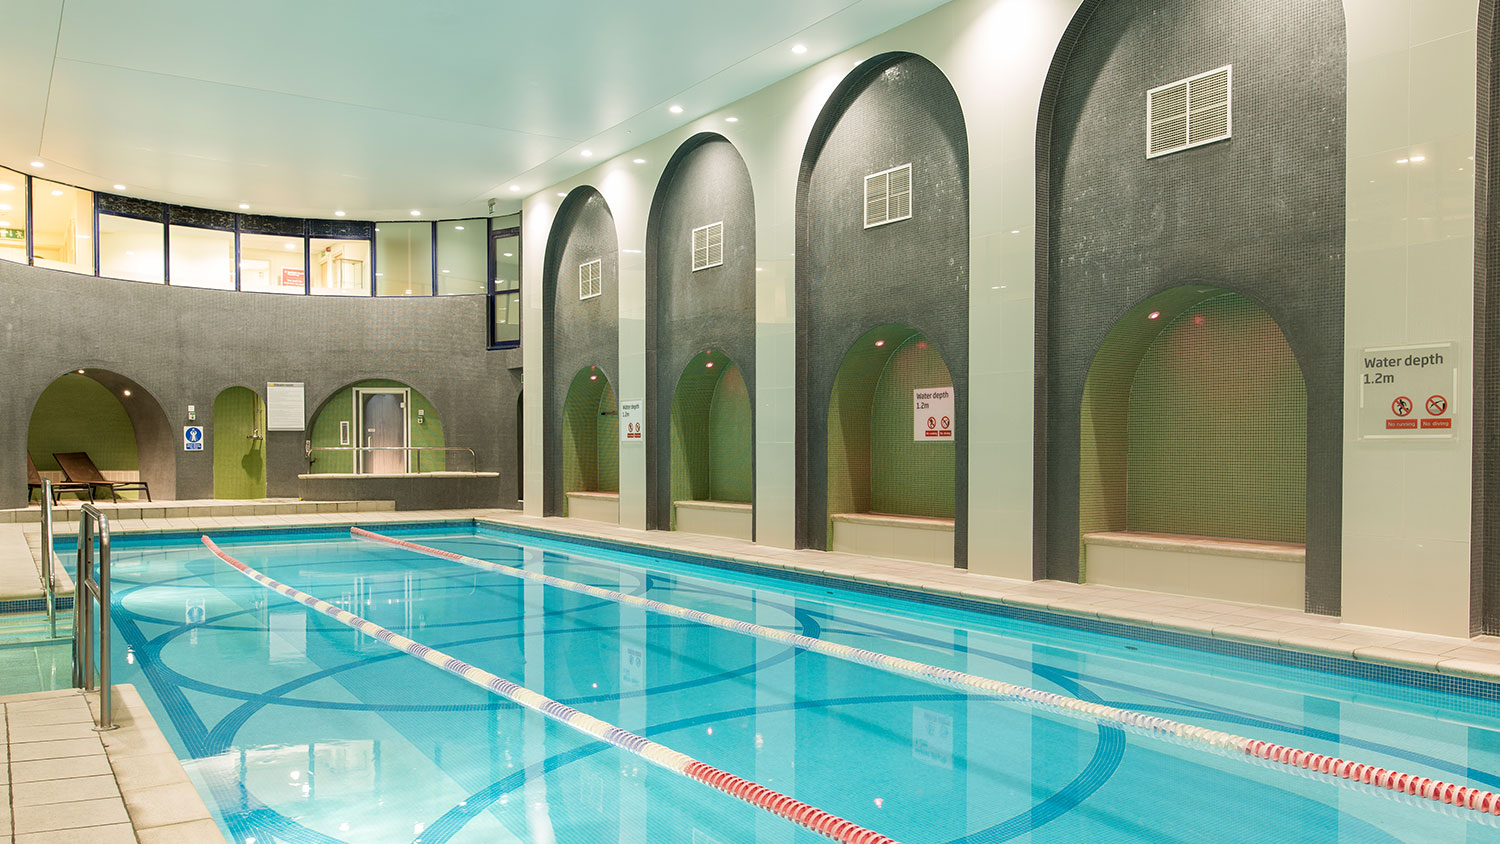 Bloomsbury gym pool